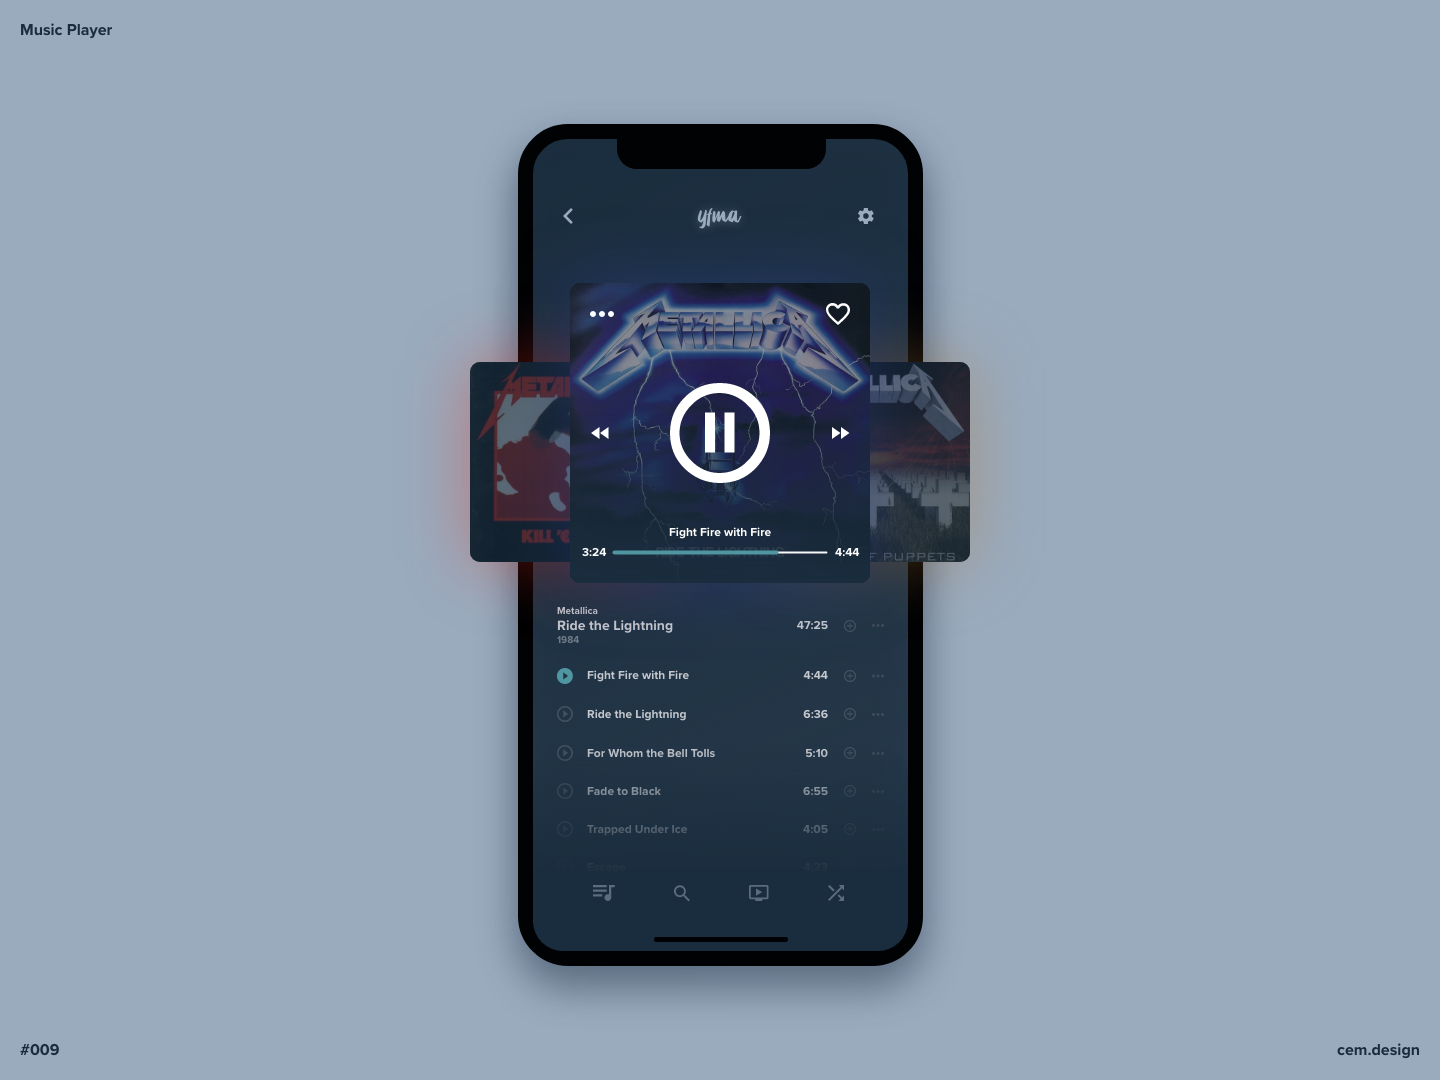 Day 009 - Music Player dailyui ui design app music player music app daily ui